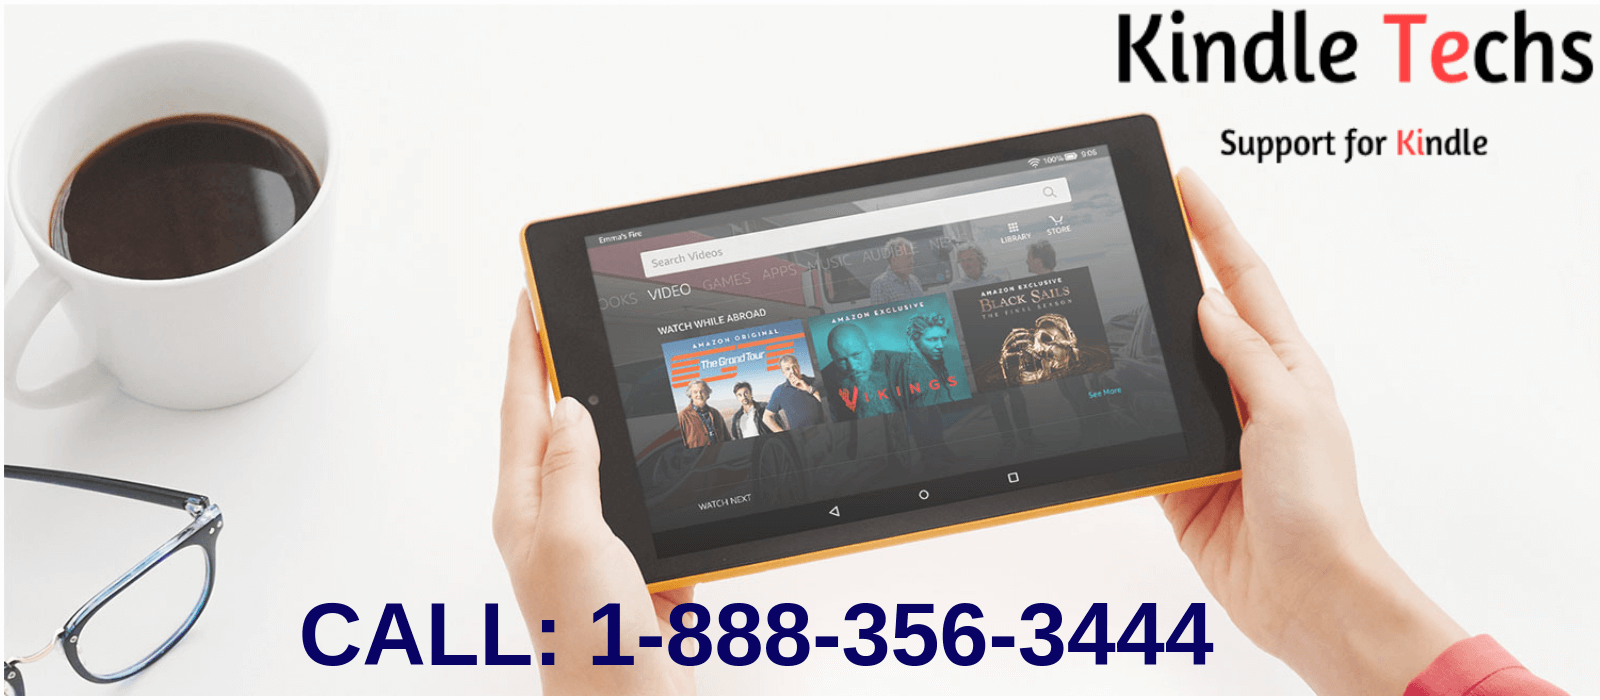 Kindle fire tech support phone number Kindle, Kindle